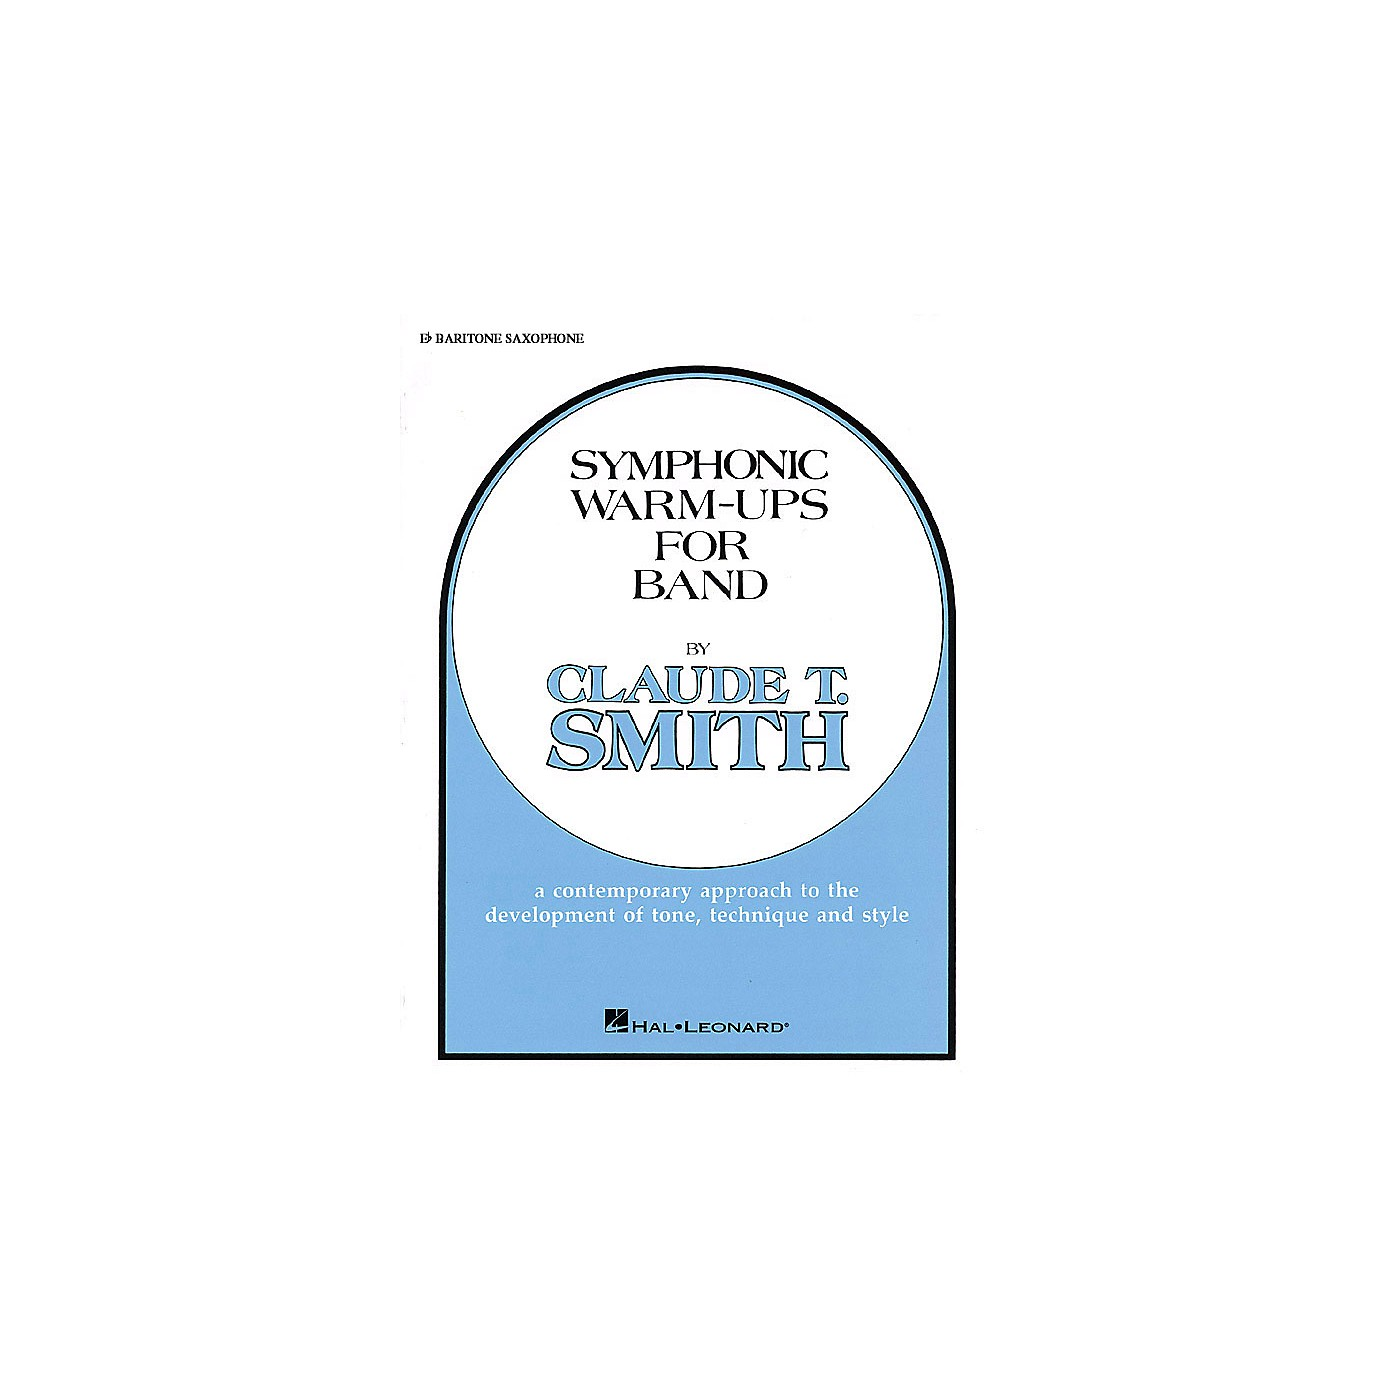 Hal Leonard Symphonic Warm-Ups for Band (Eb Baritone Sax) Concert Band Level 2-3 Composed by Claude T. Smith thumbnail